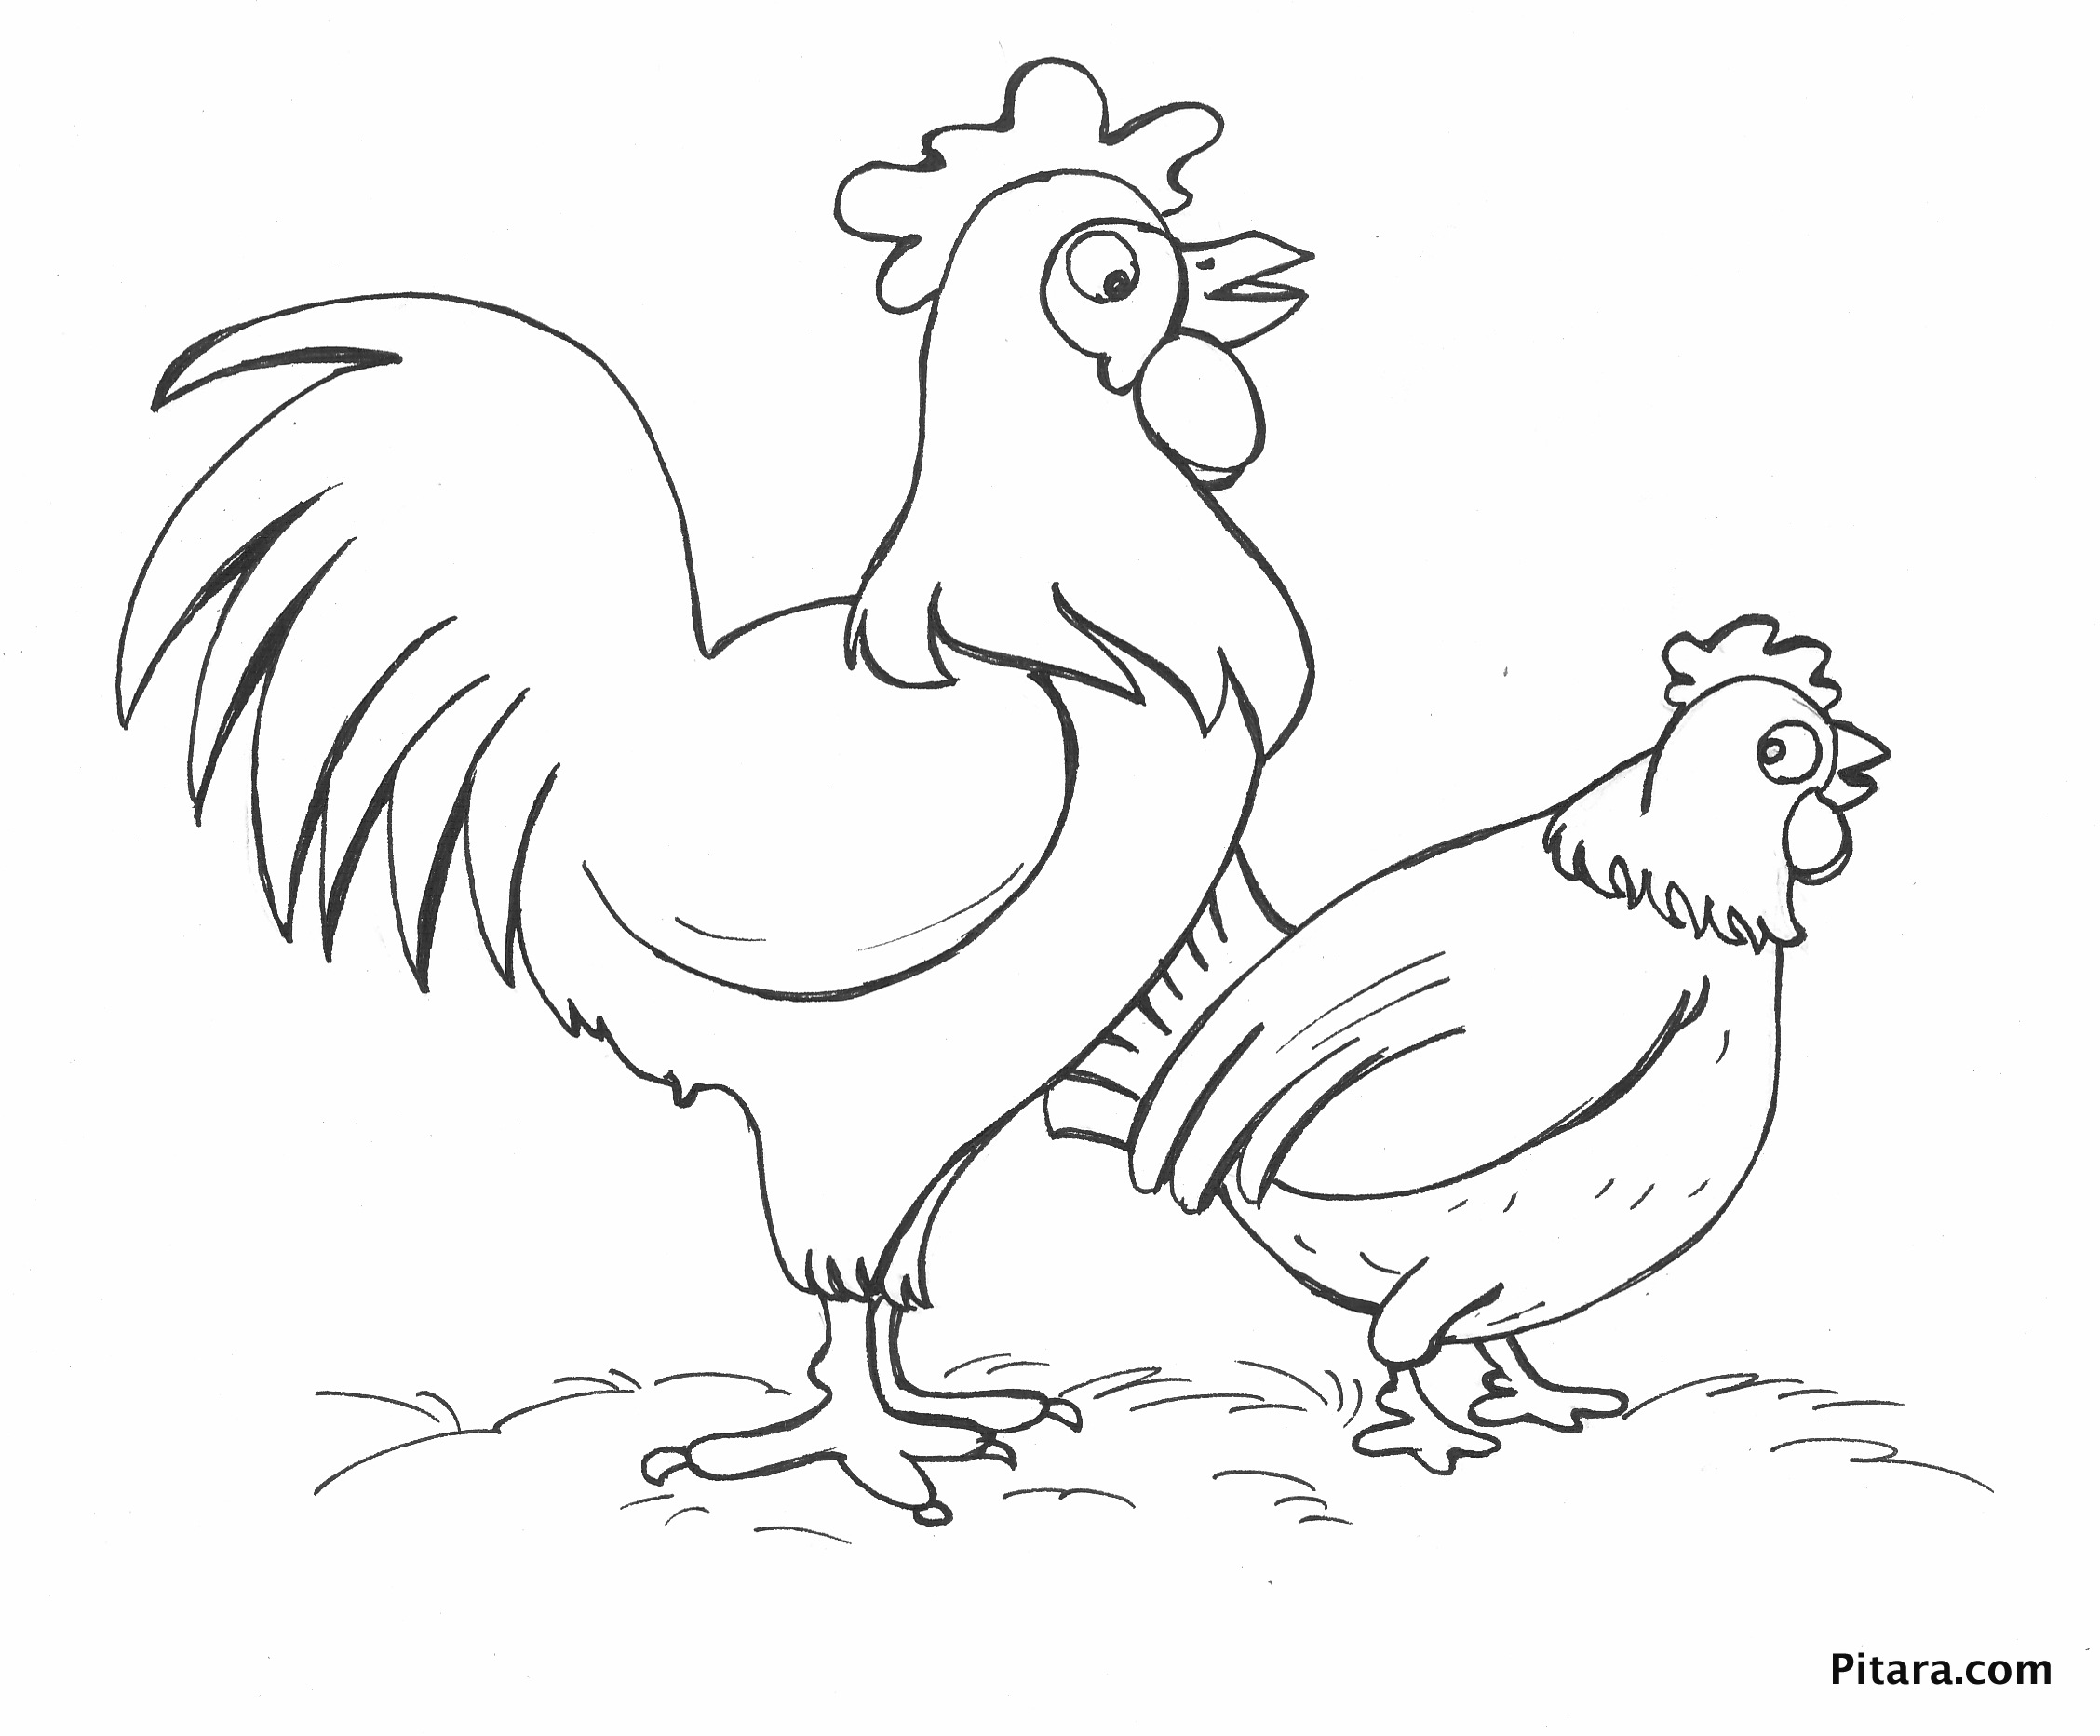 Chicken Drawing For Kids At Getdrawings